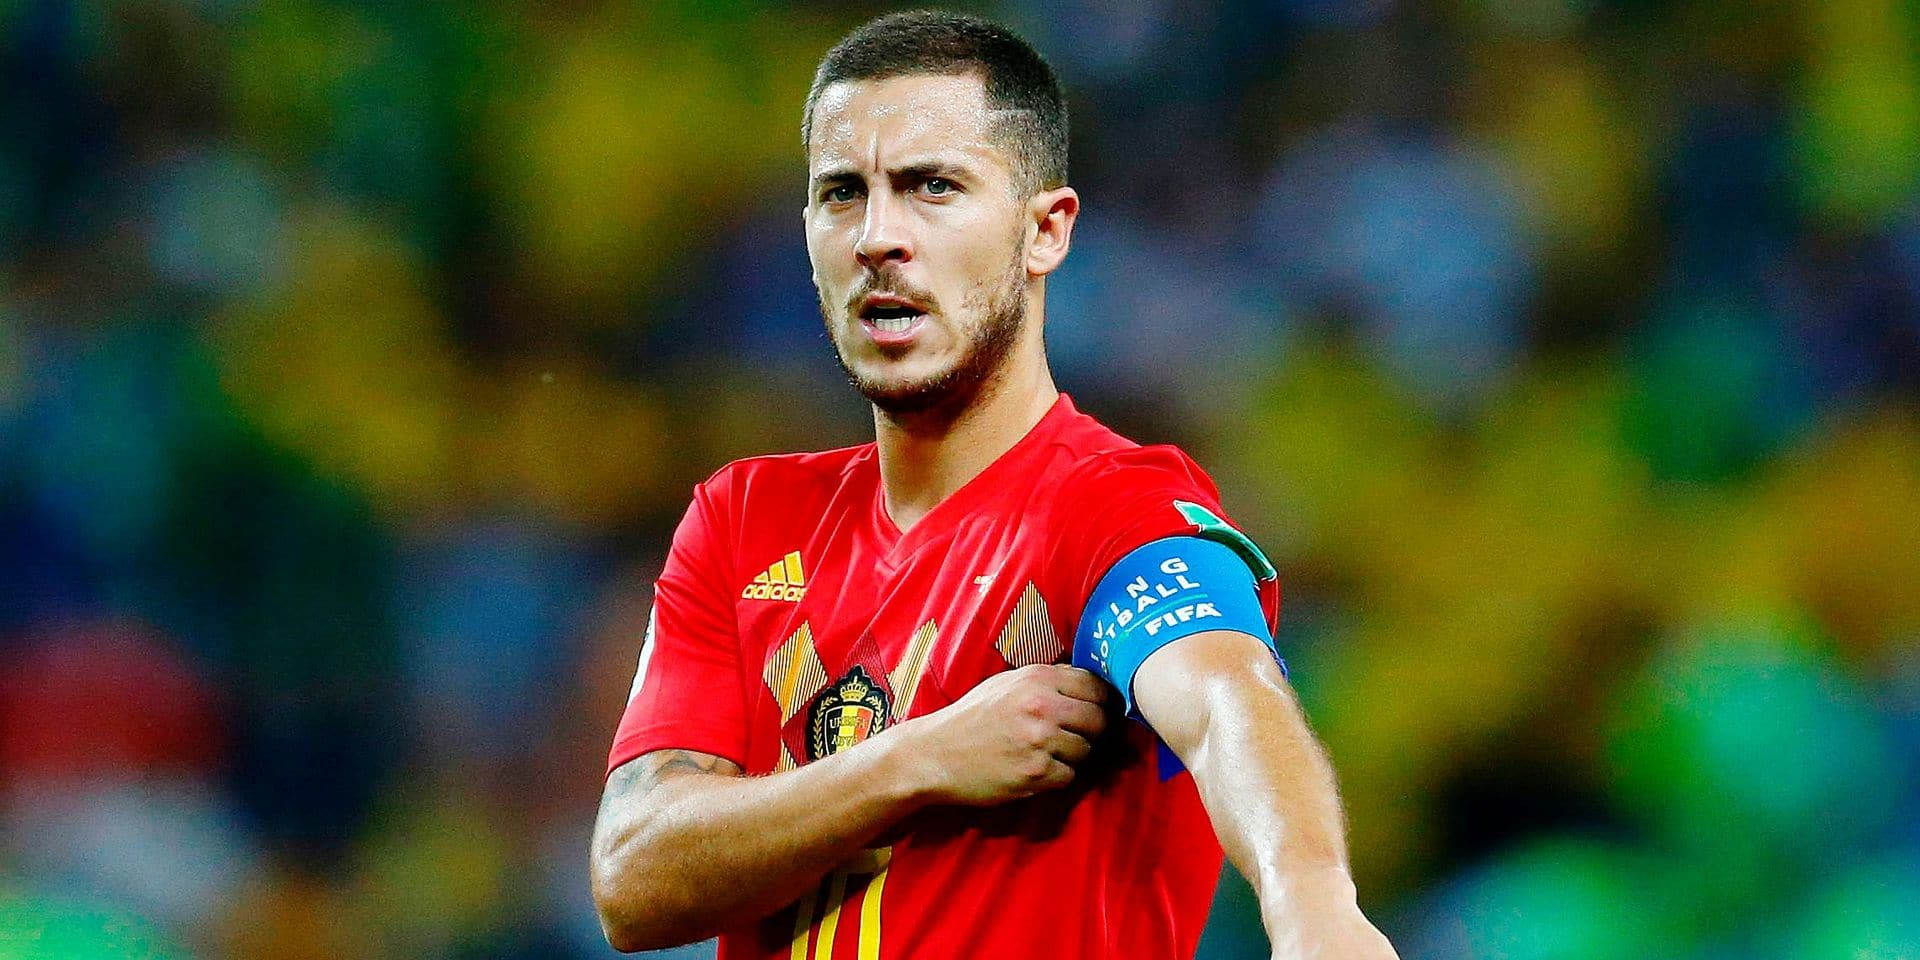 Belgium's forward Eden Hazard adjusts his captain's band during the Russia 2018 World Cup quarter-final football match between Brazil and Belgium at the Kazan Arena in Kazan on July 6, 2018. / AFP PHOTO / BENJAMIN CREMEL / RESTRICTED TO EDITORIAL USE - NO MOBILE PUSH ALERTS/DOWNLOADS